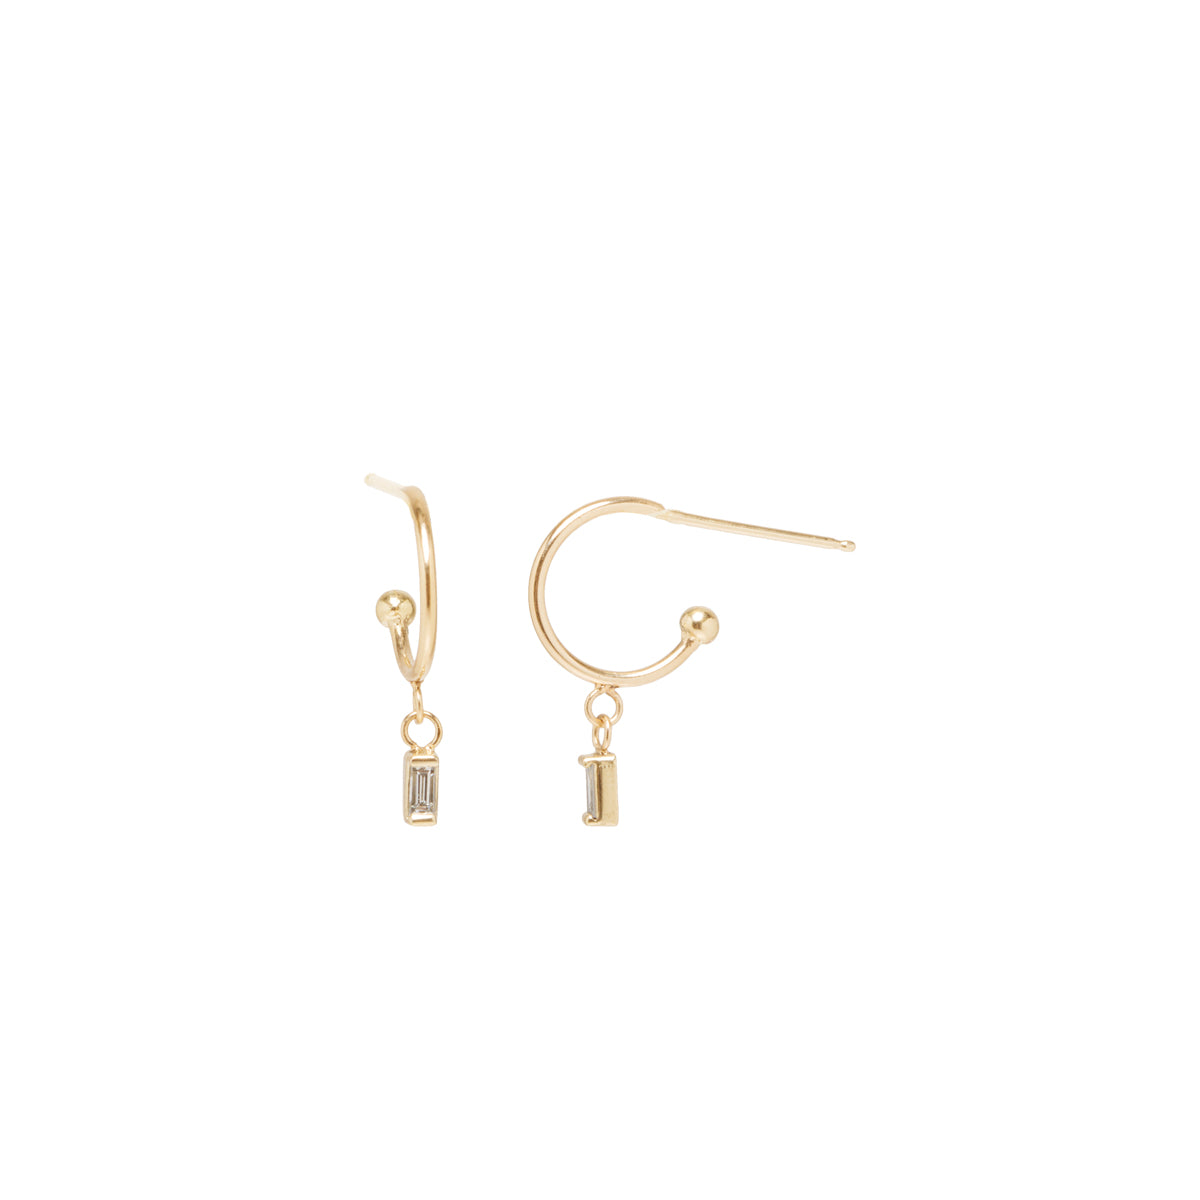 Zoë Chicco 14kt Yellow Gold White Baguette Diamond Thin Huggie Hoop Earrings